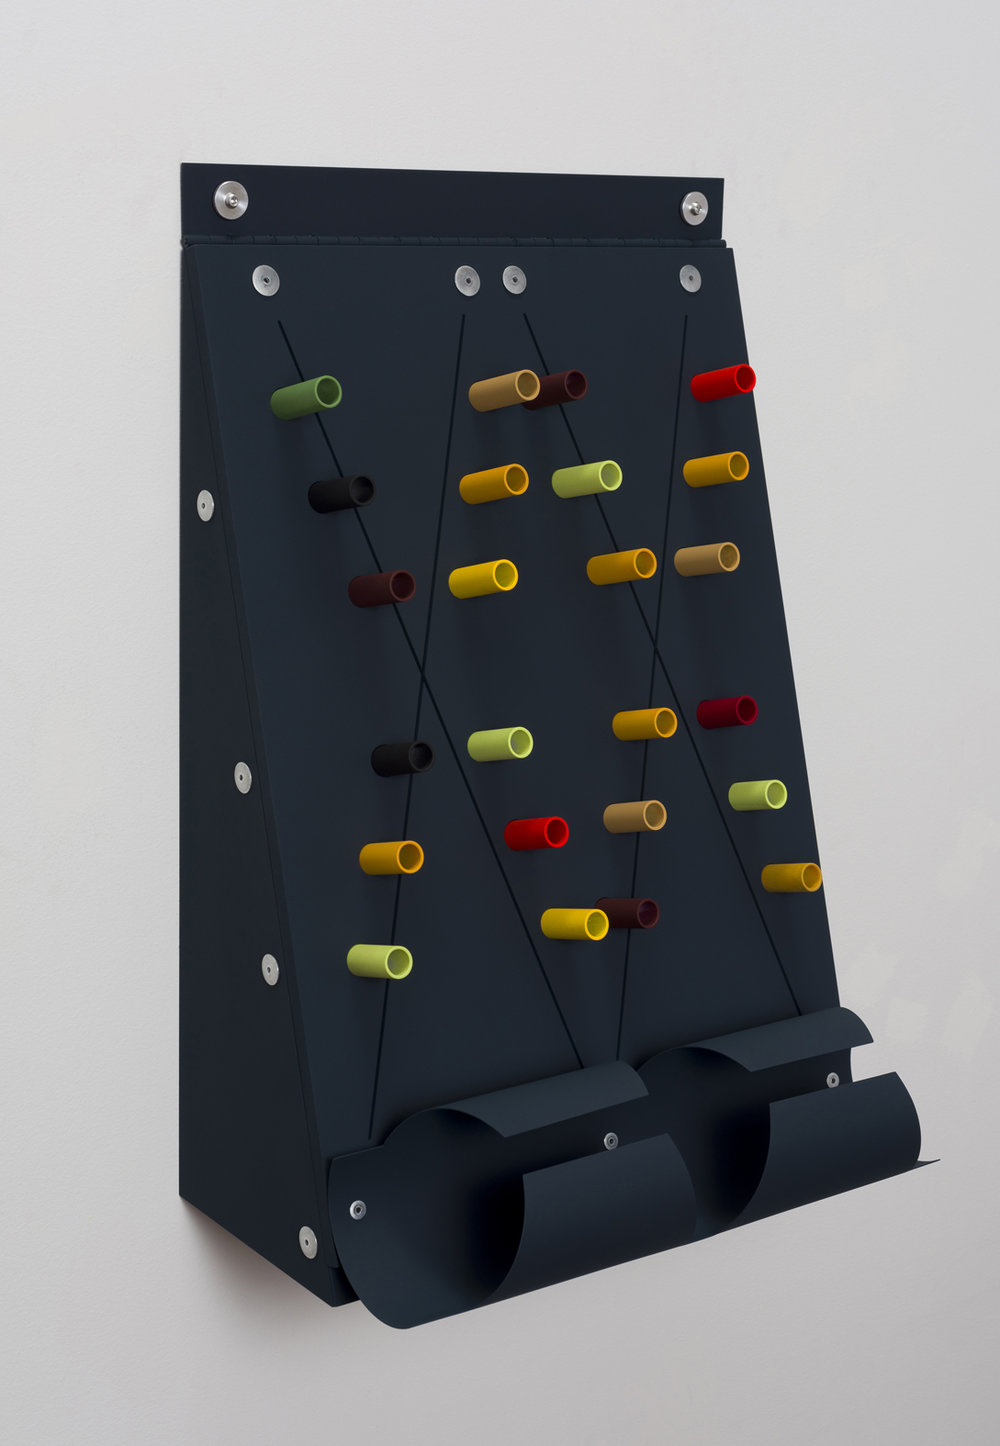 Untitled (Hinged top)  2019  Aluminium, aluminium rivets, aluminium hinge, rubber O - rings, vinyl paint  39.4 x 27.9 x 22.9 cm / 15.5 x 11 x 9 in